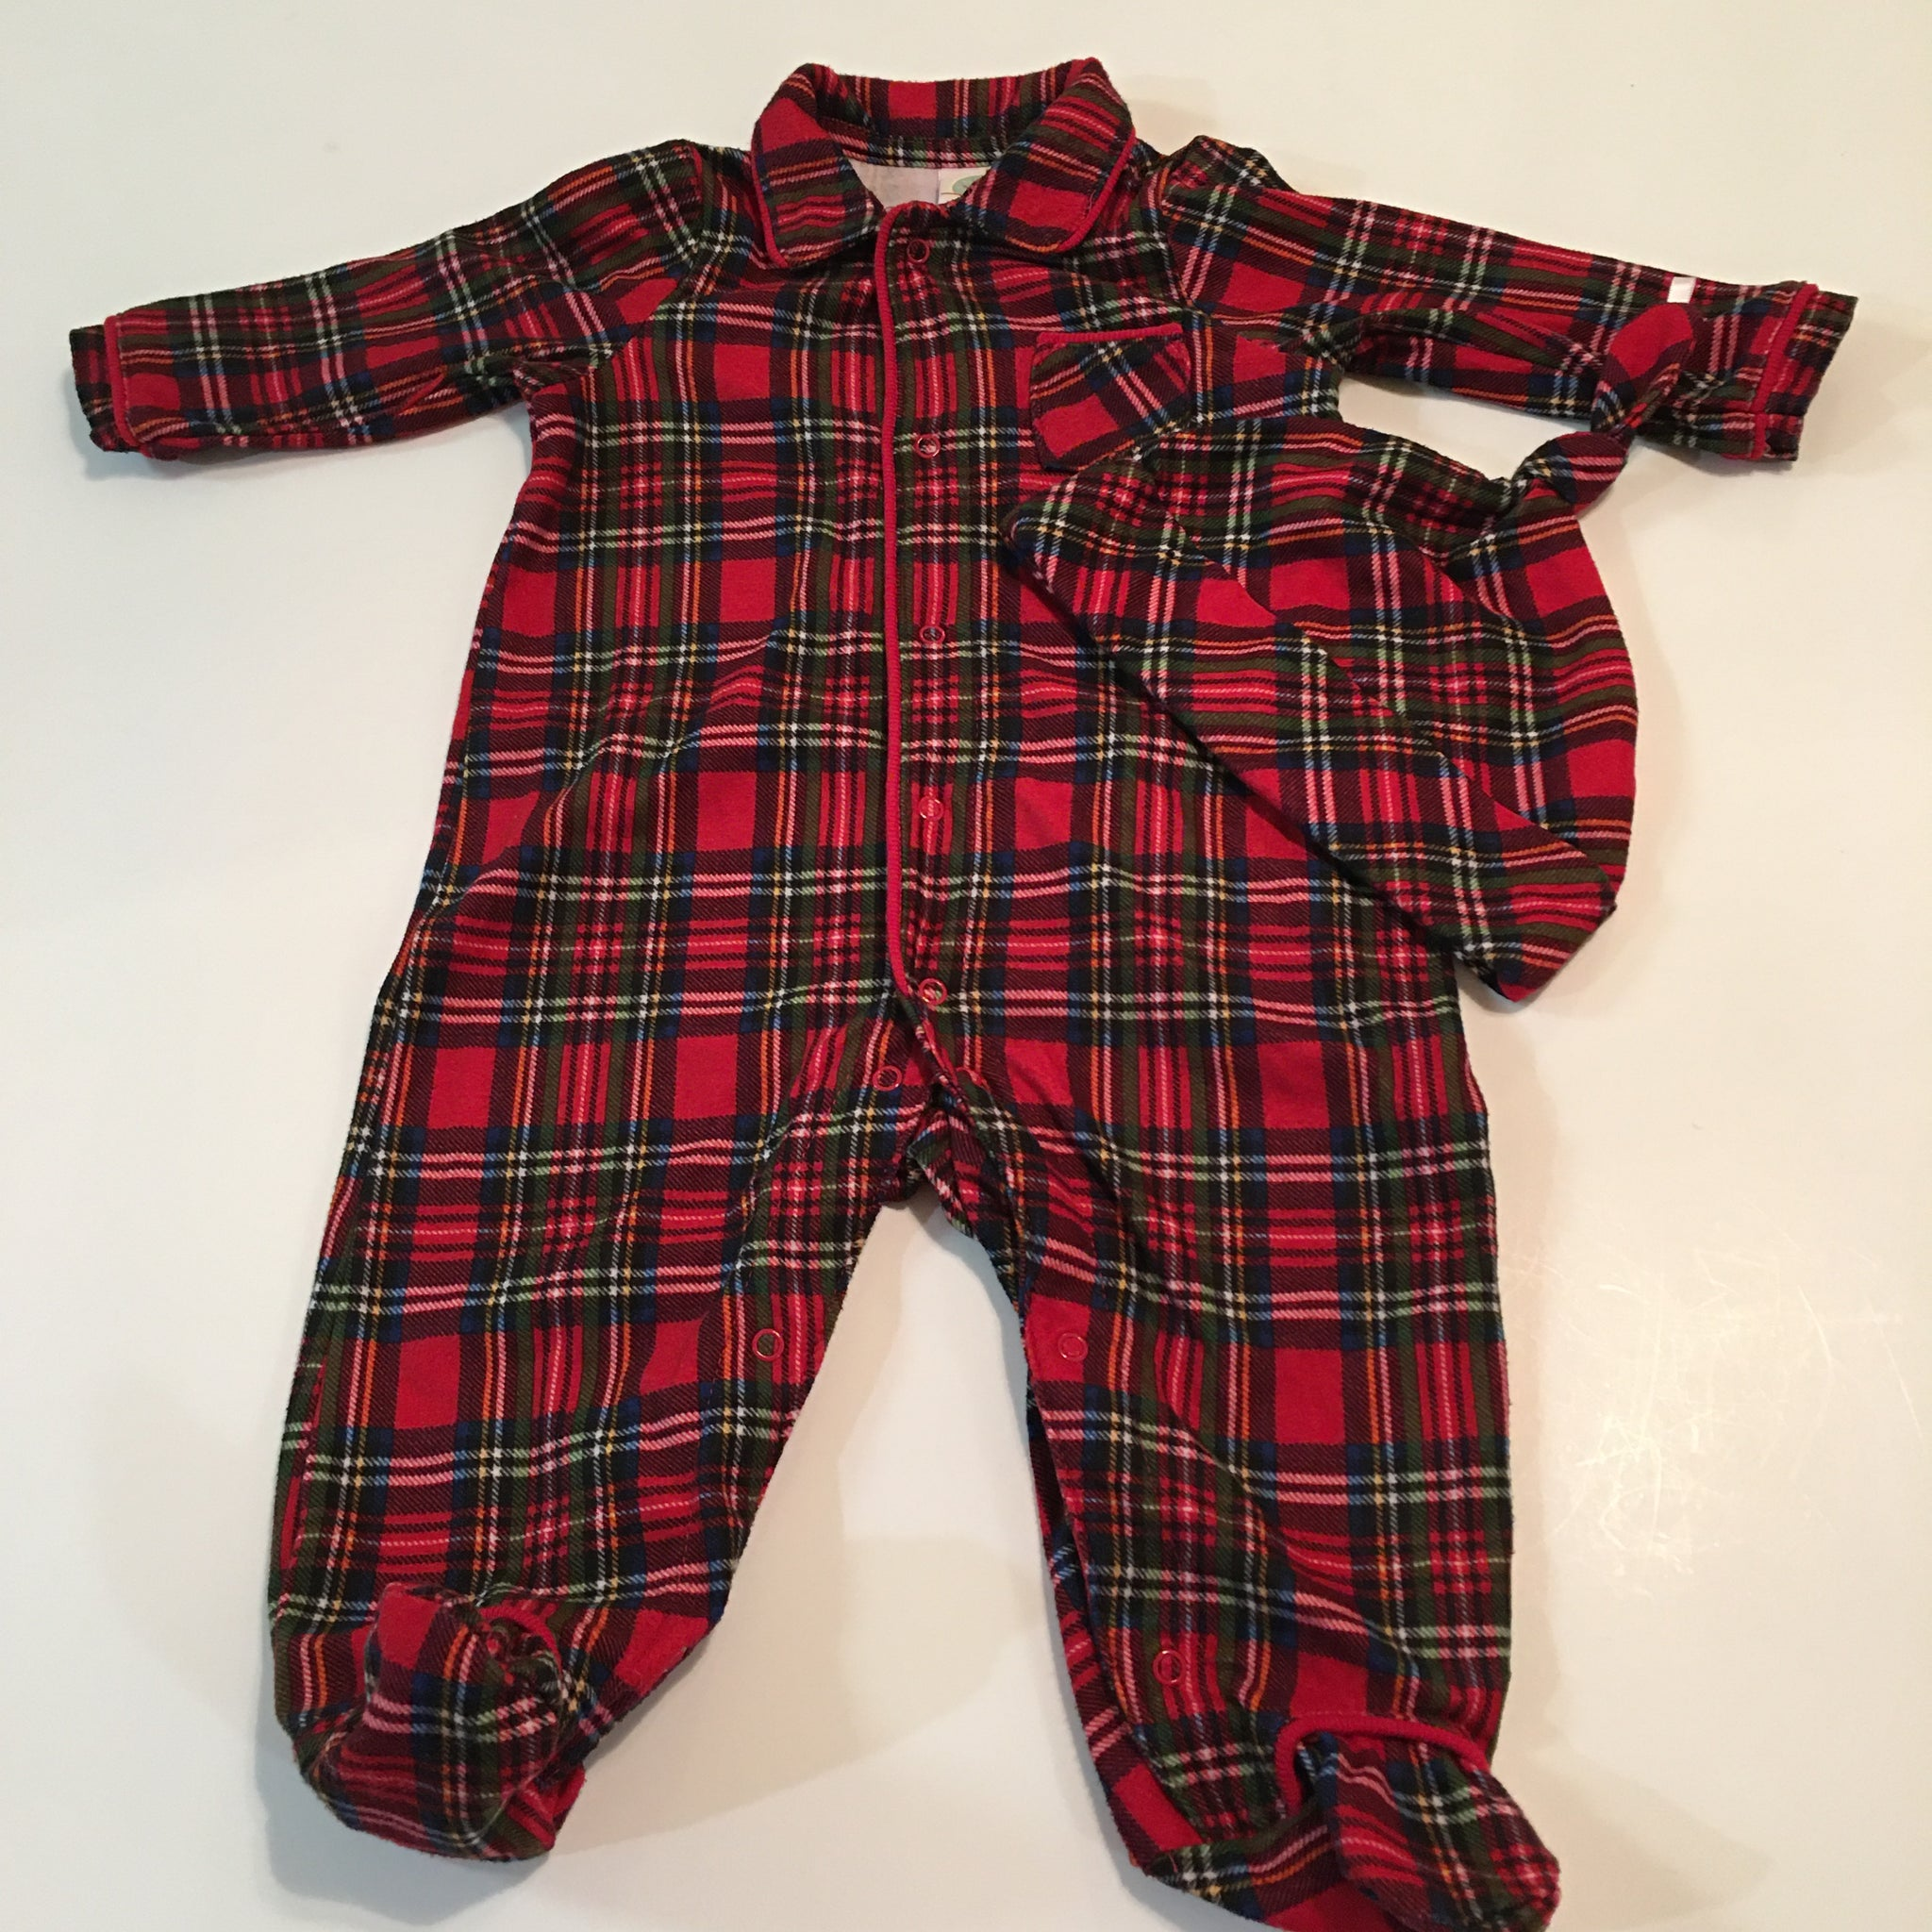 Pajama, Little Me, size 6mo